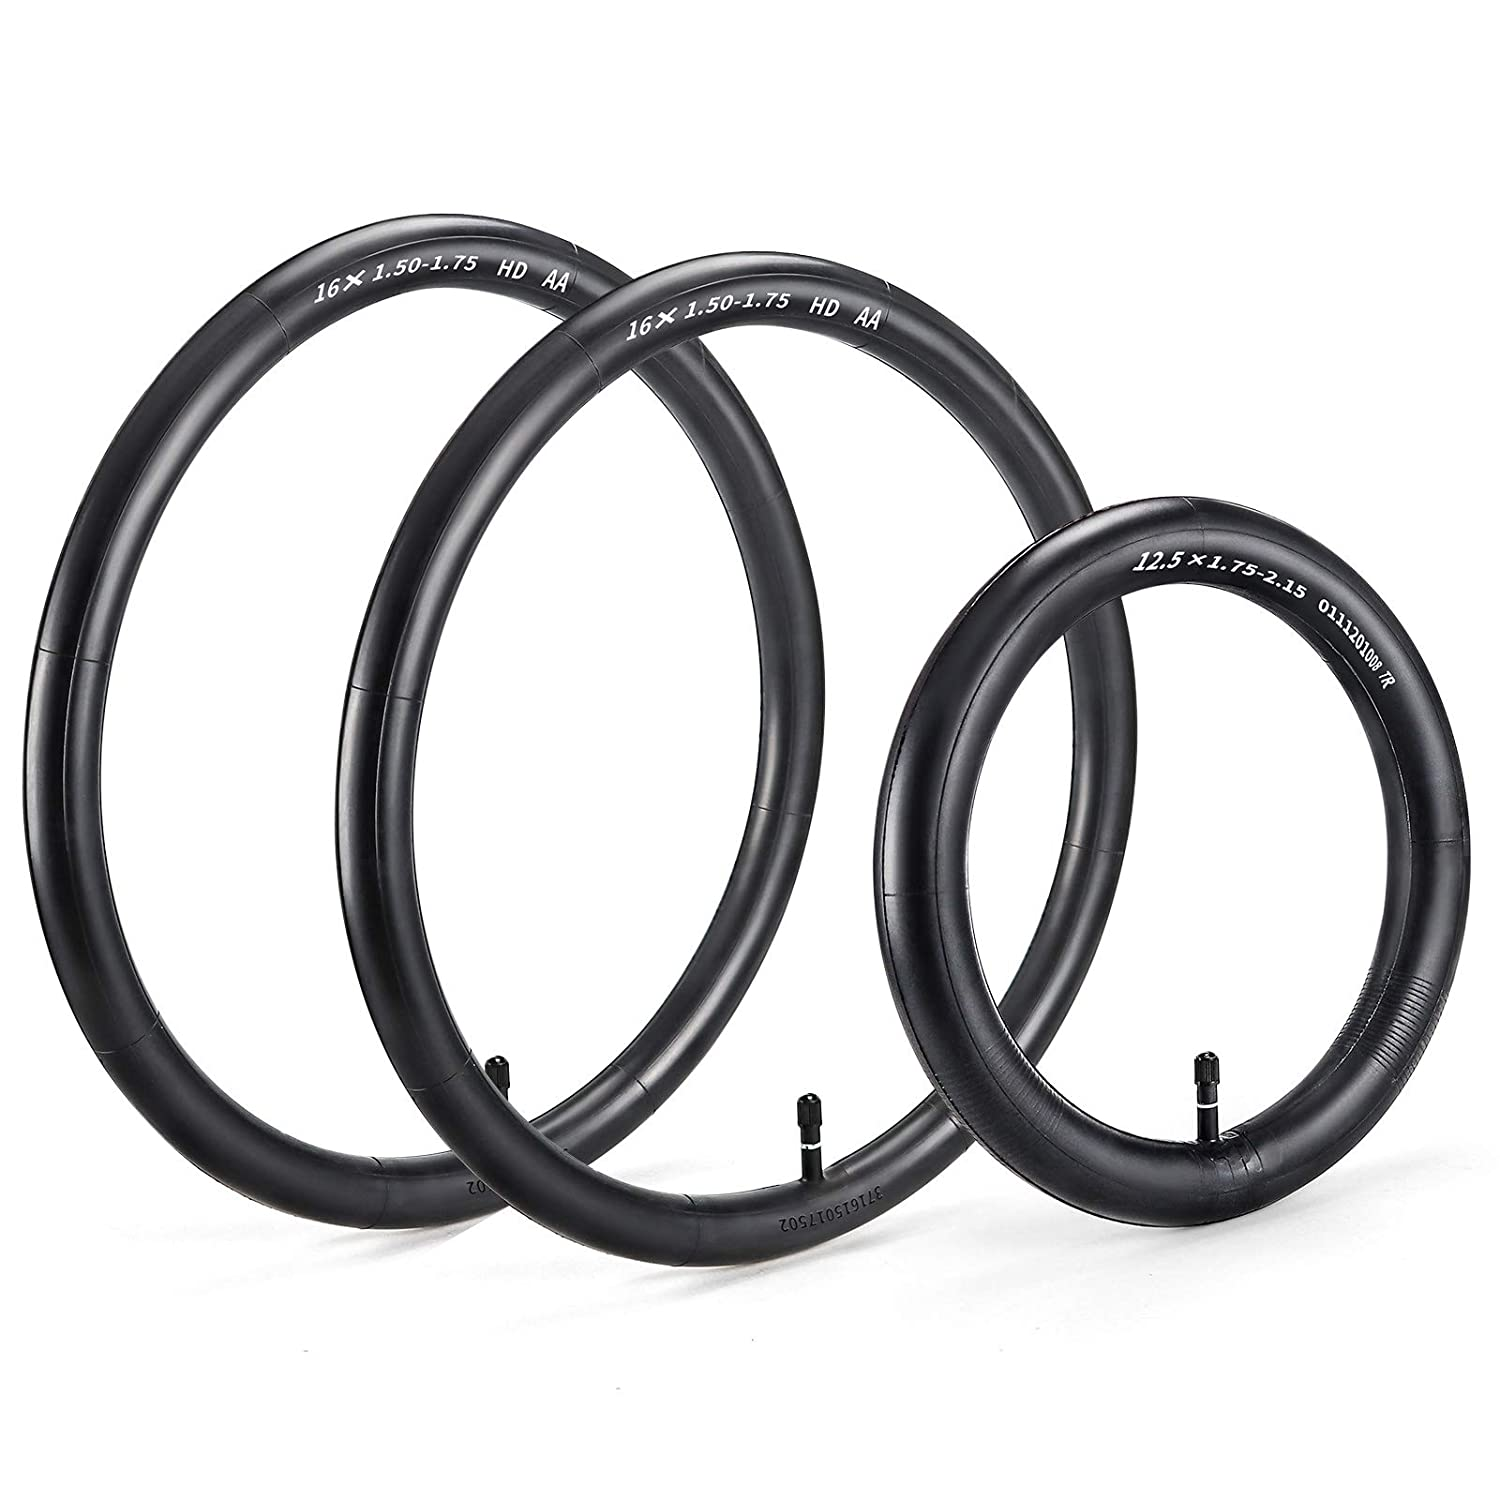 Tire Inner Tubes Two 16'' Back and One 12.5'' Thorn Resistant Front Wheel Replacement, by Cenipar, for All BOB Revolution, Royalbaby, and More Strollers, Set of Three